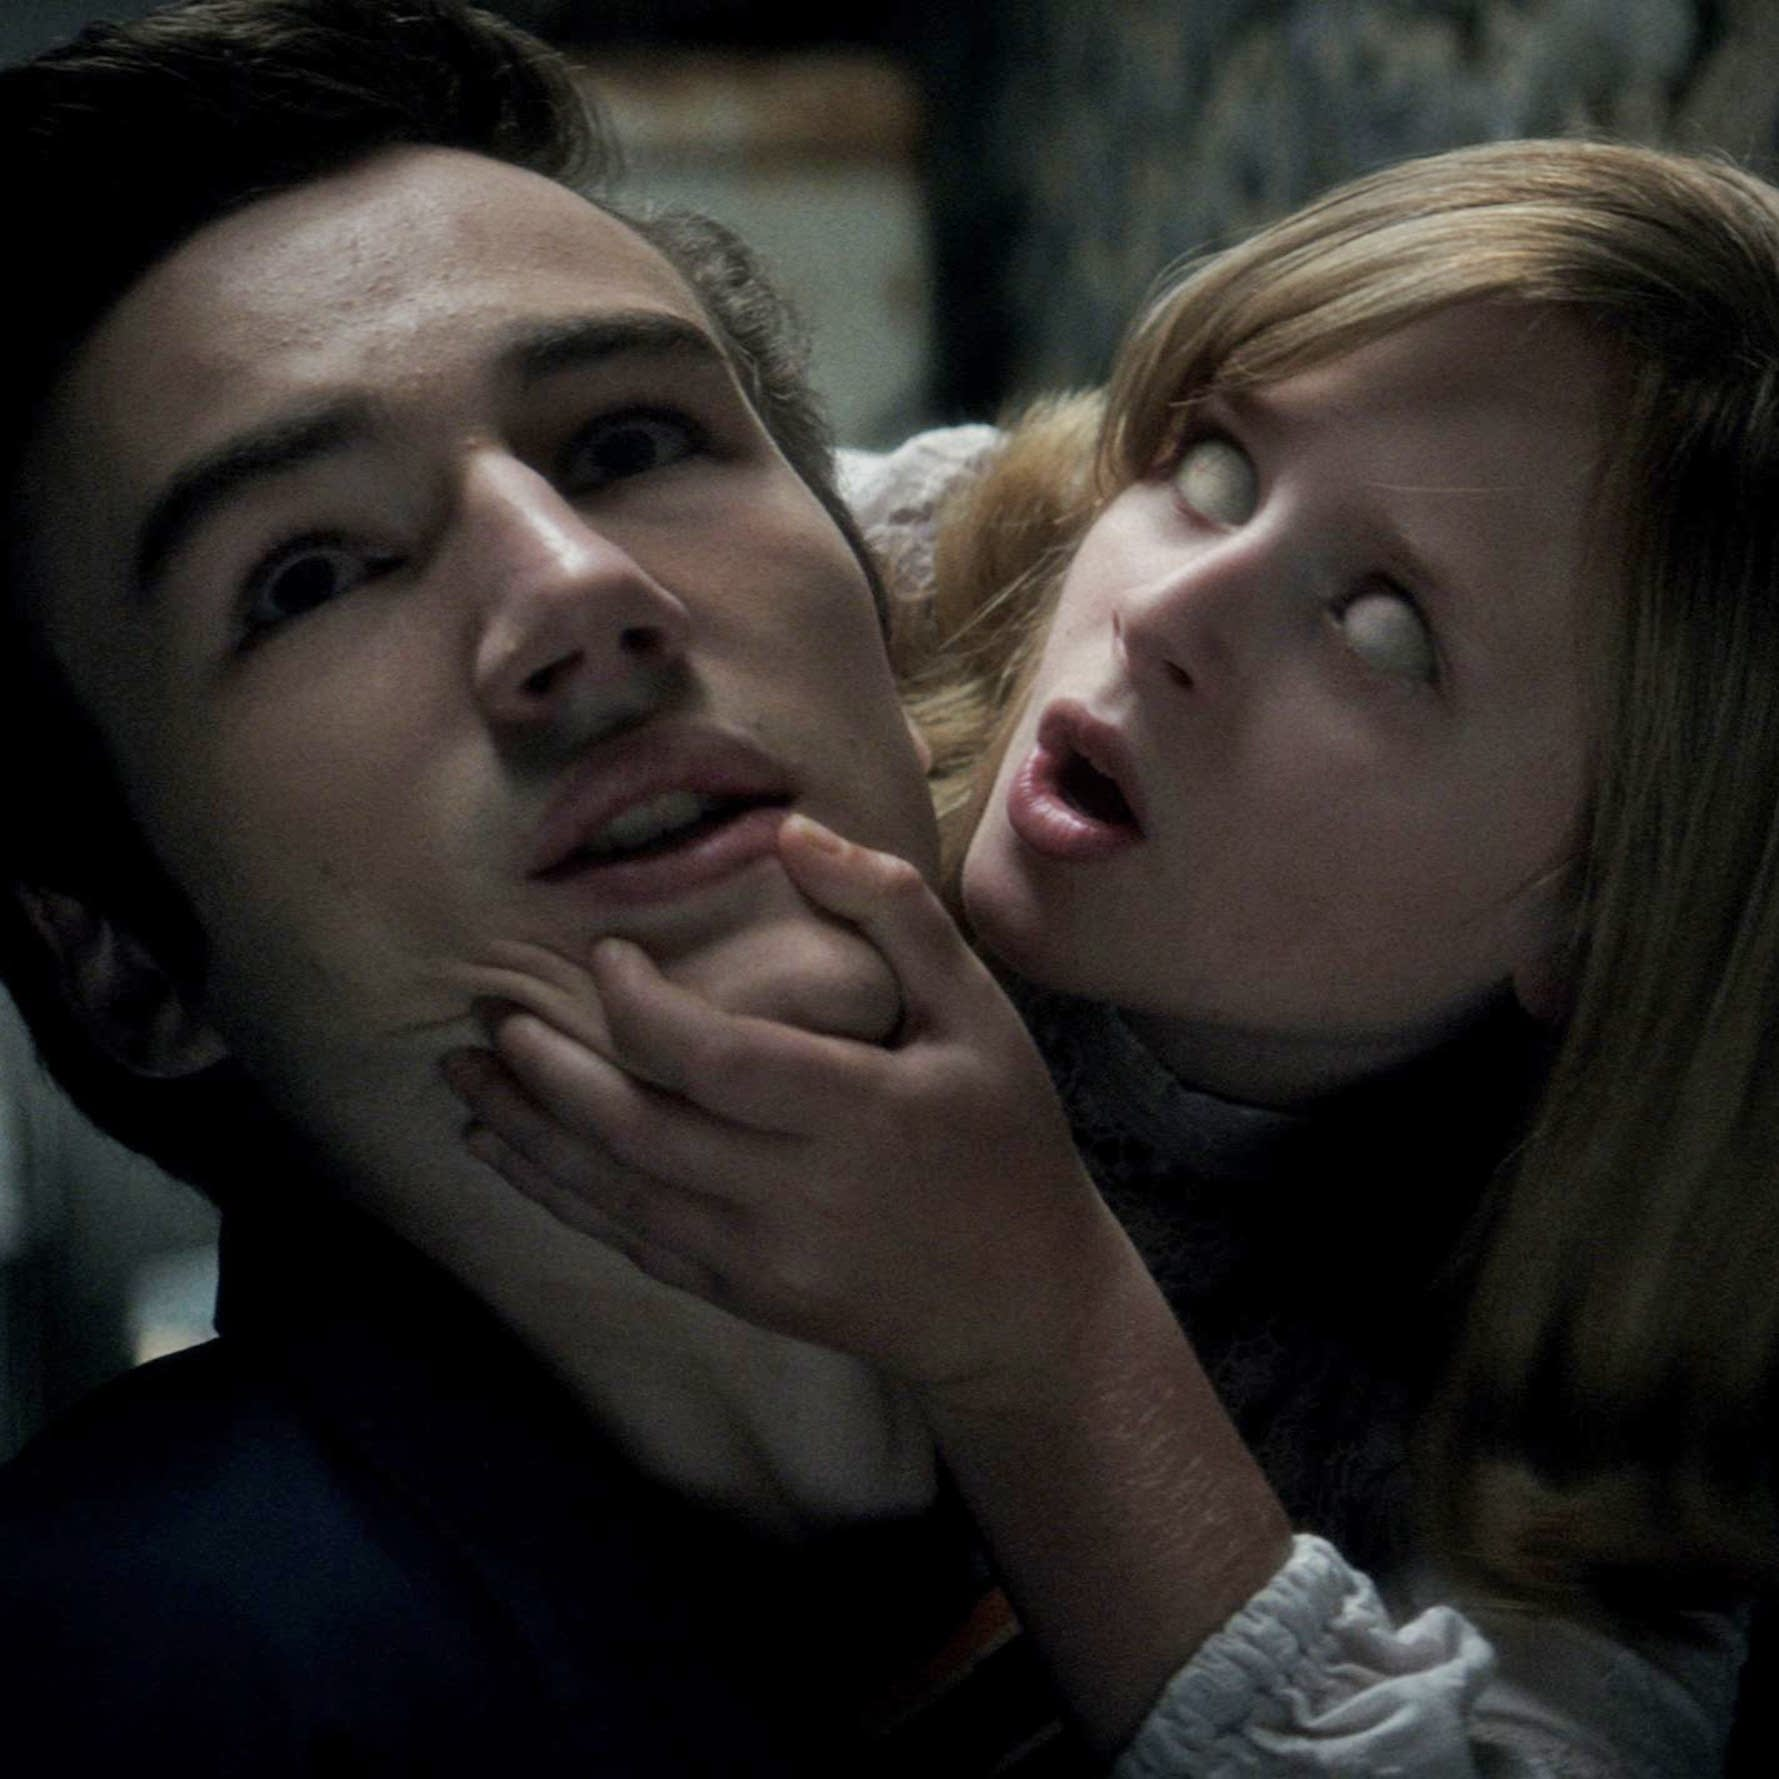 Scene from 'Ouija: Origin of Evil'